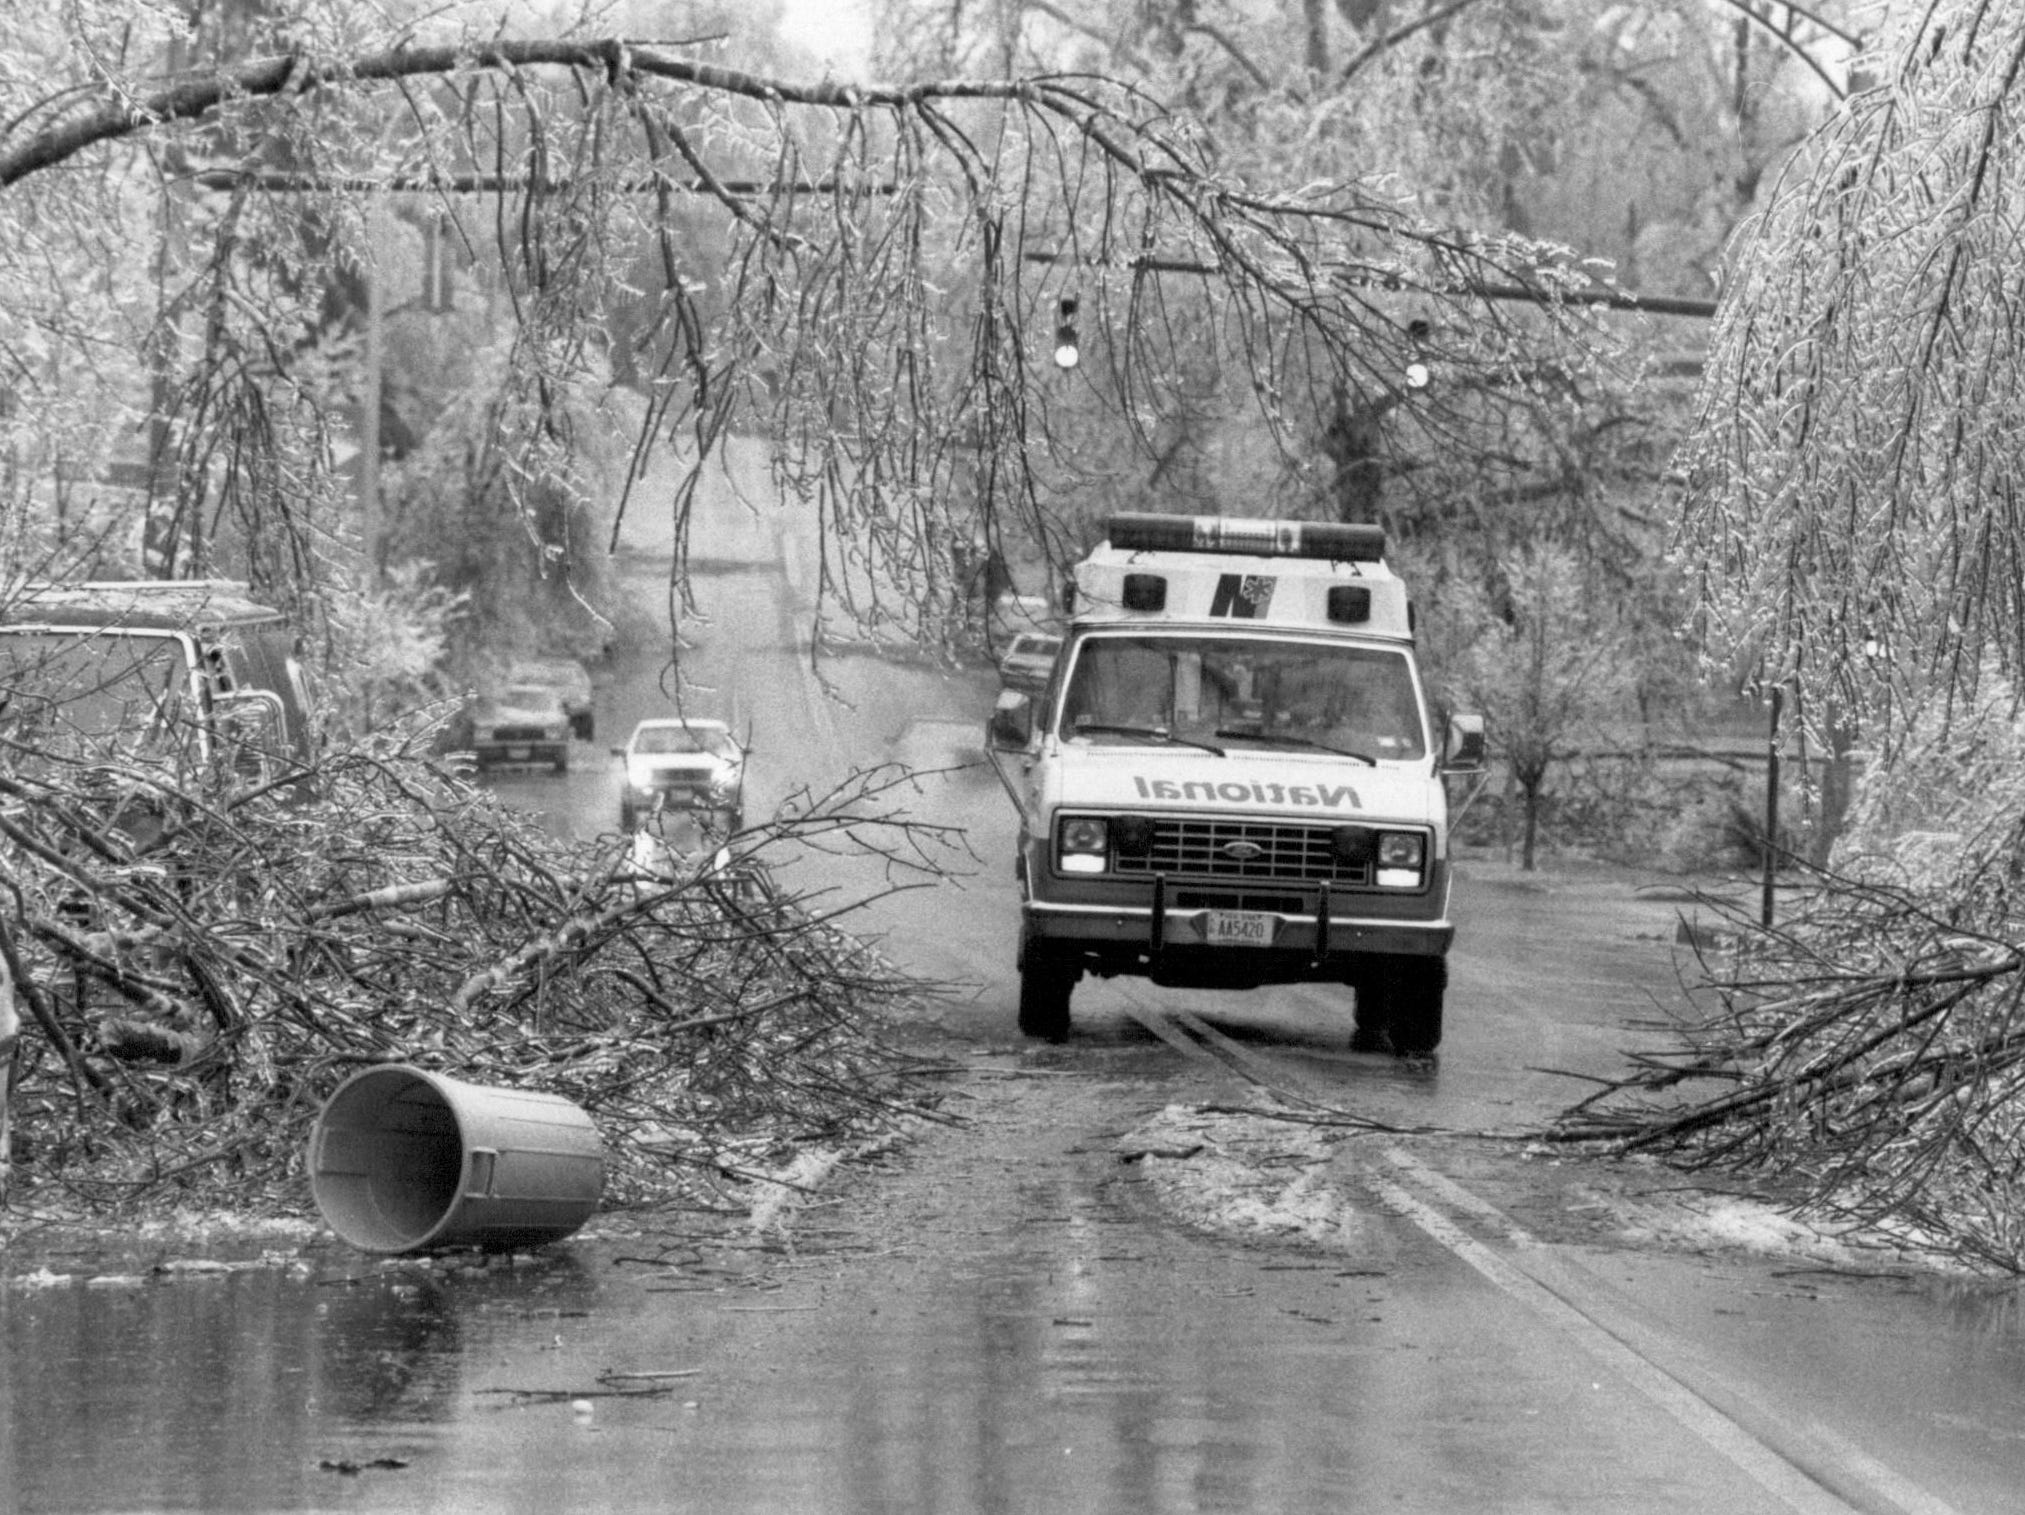 An ambulance tries to navigate South Avenue during the ice storm that struck the Rochester region in March, 1991.